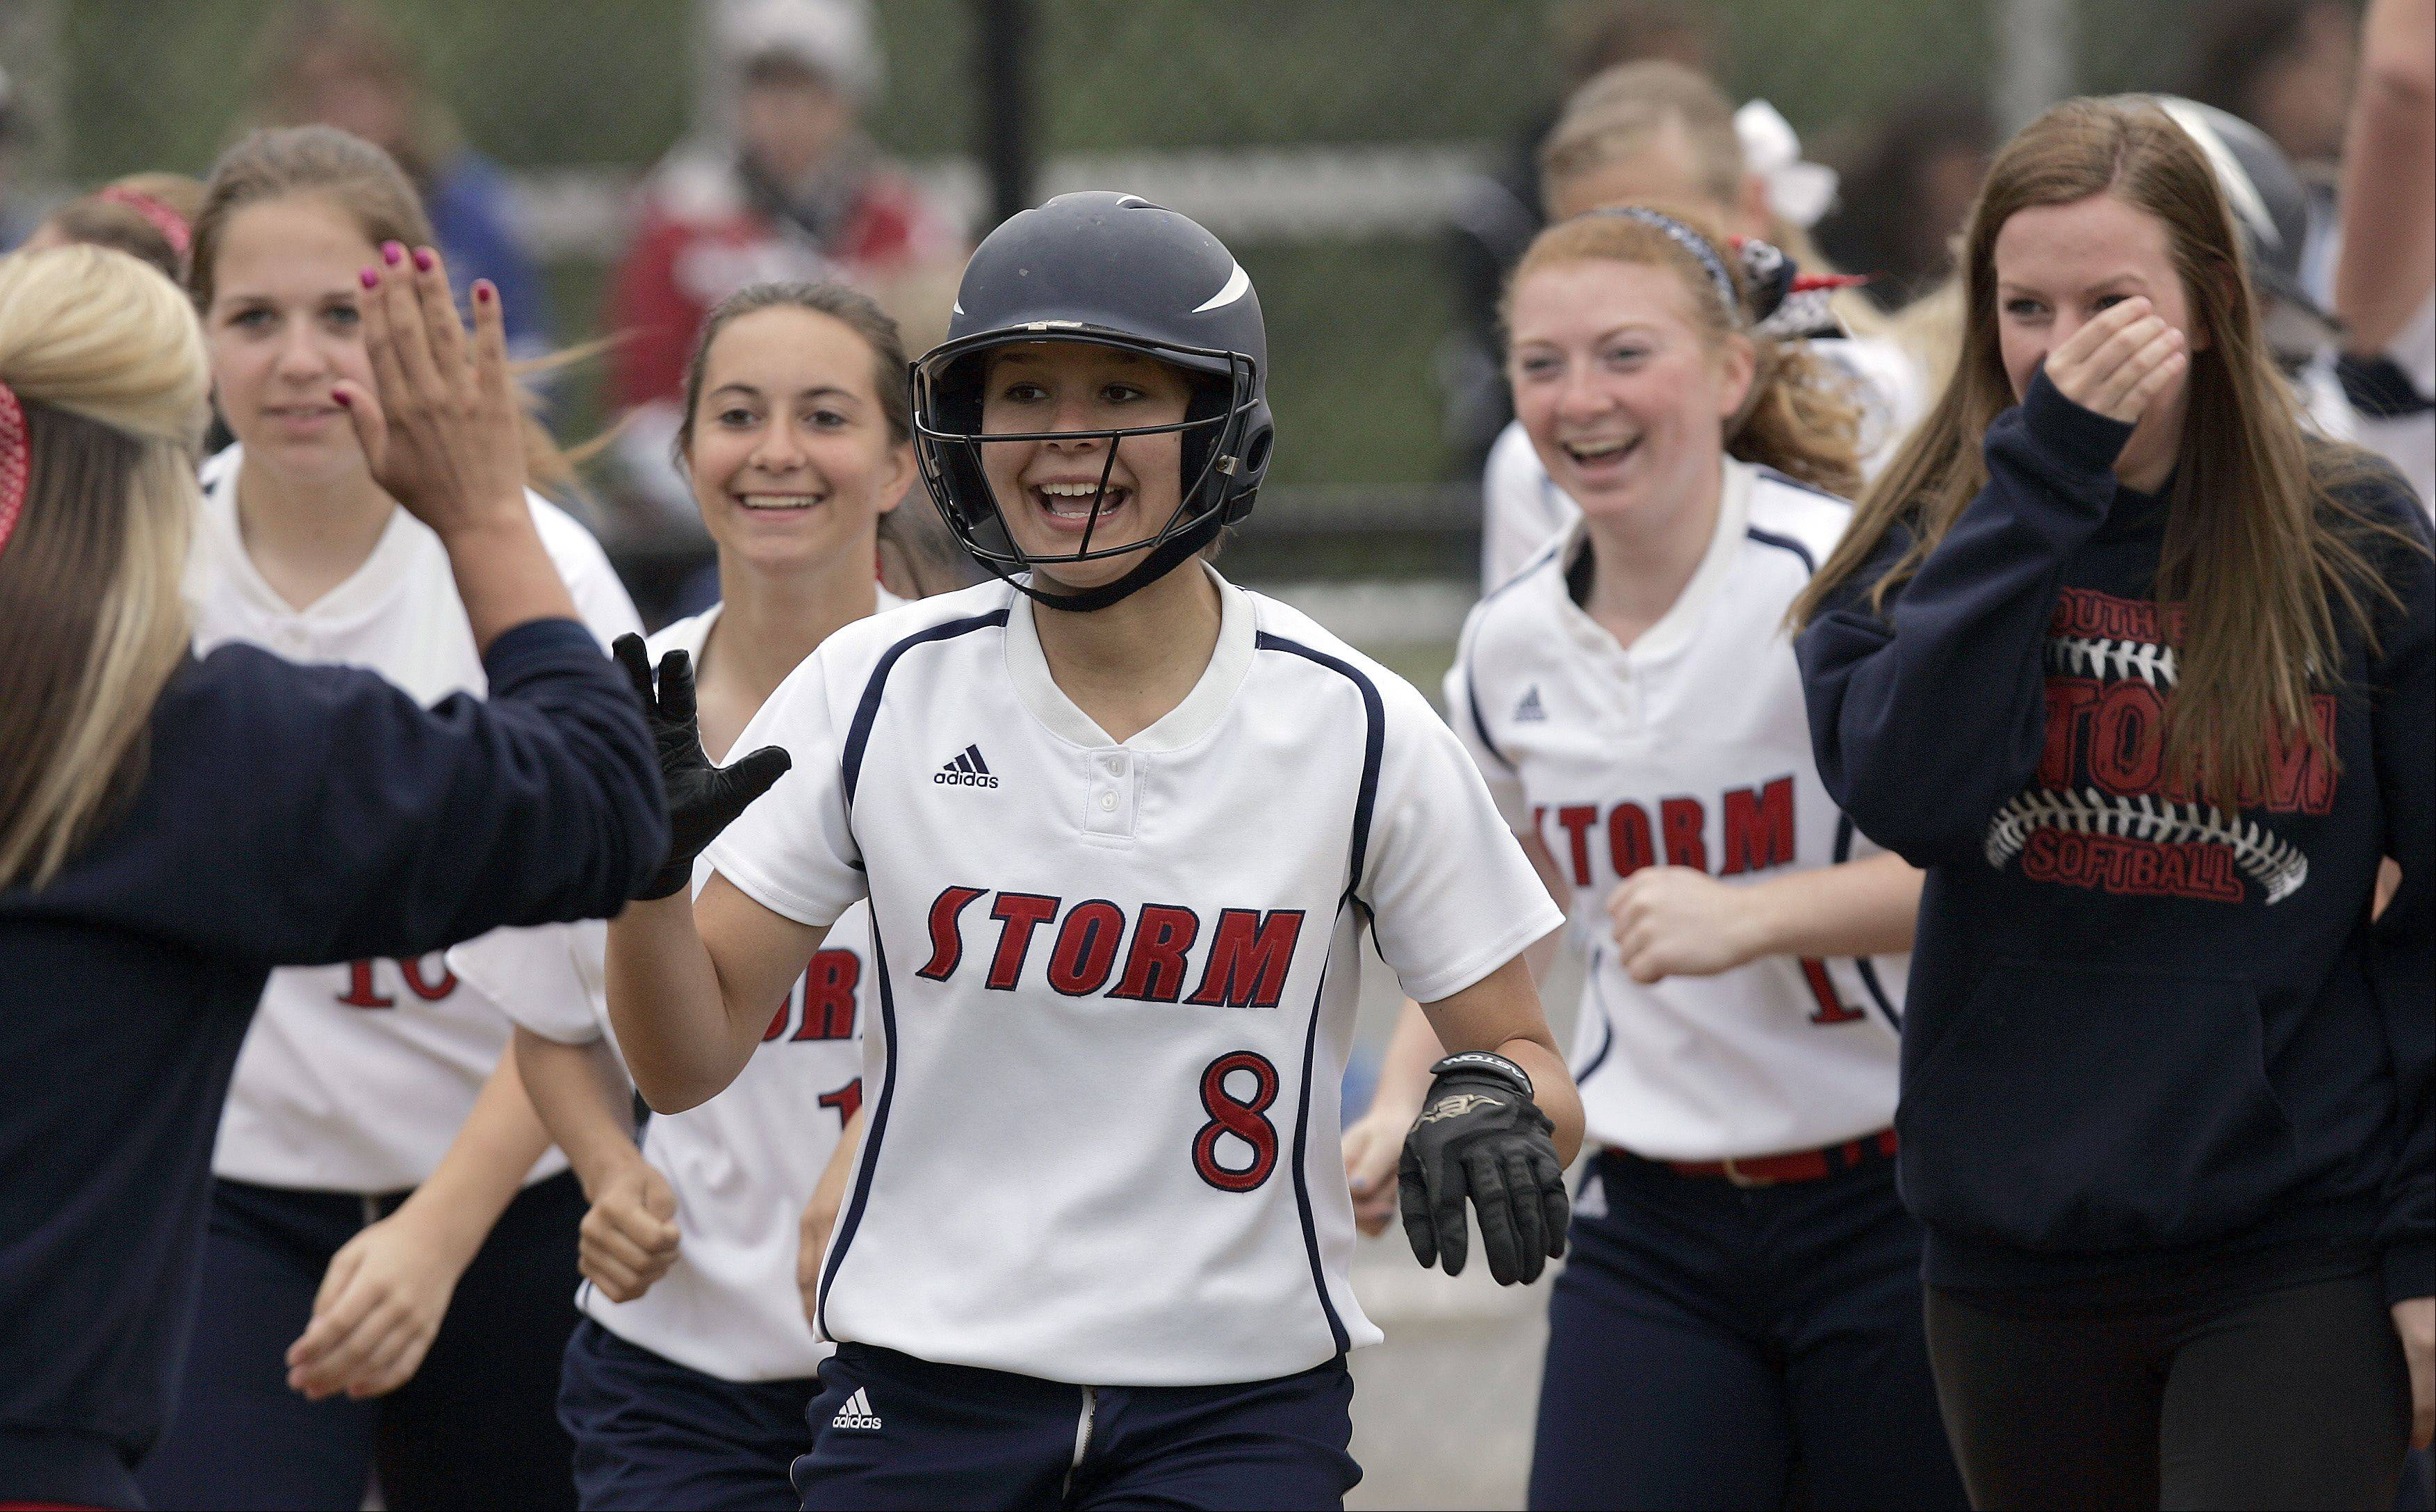 South Elgin's Victoria Watt(8) is greeted at the plate by her teammates after hitting a home run as the first batter in the game during the Class 4A regional softball final at St. Charles North Saturday.